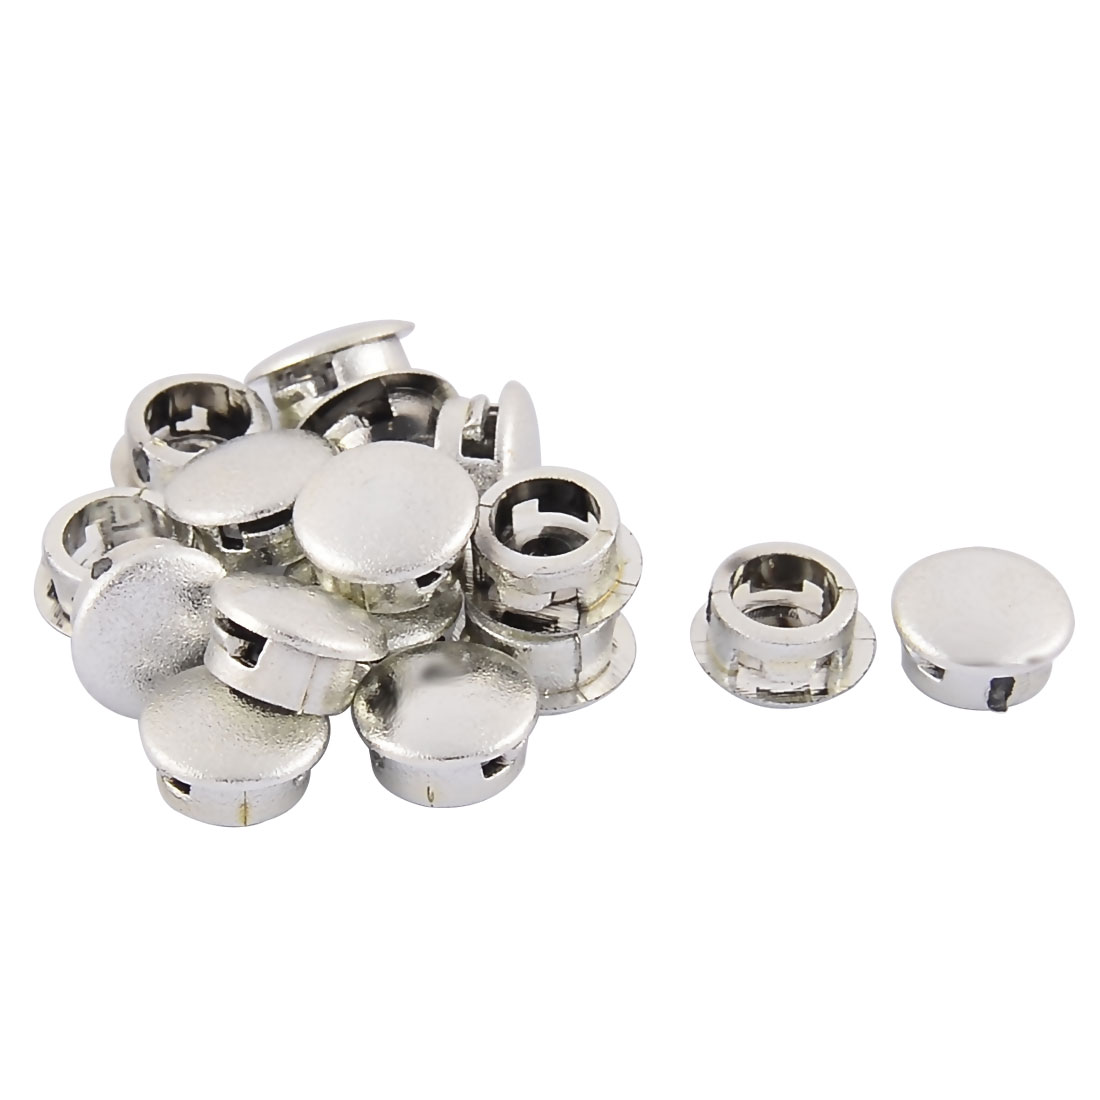 Home Plastic Round Flush Mount Cable Connector Hole Stopper Covers Silver Tone 8mm 16pcs